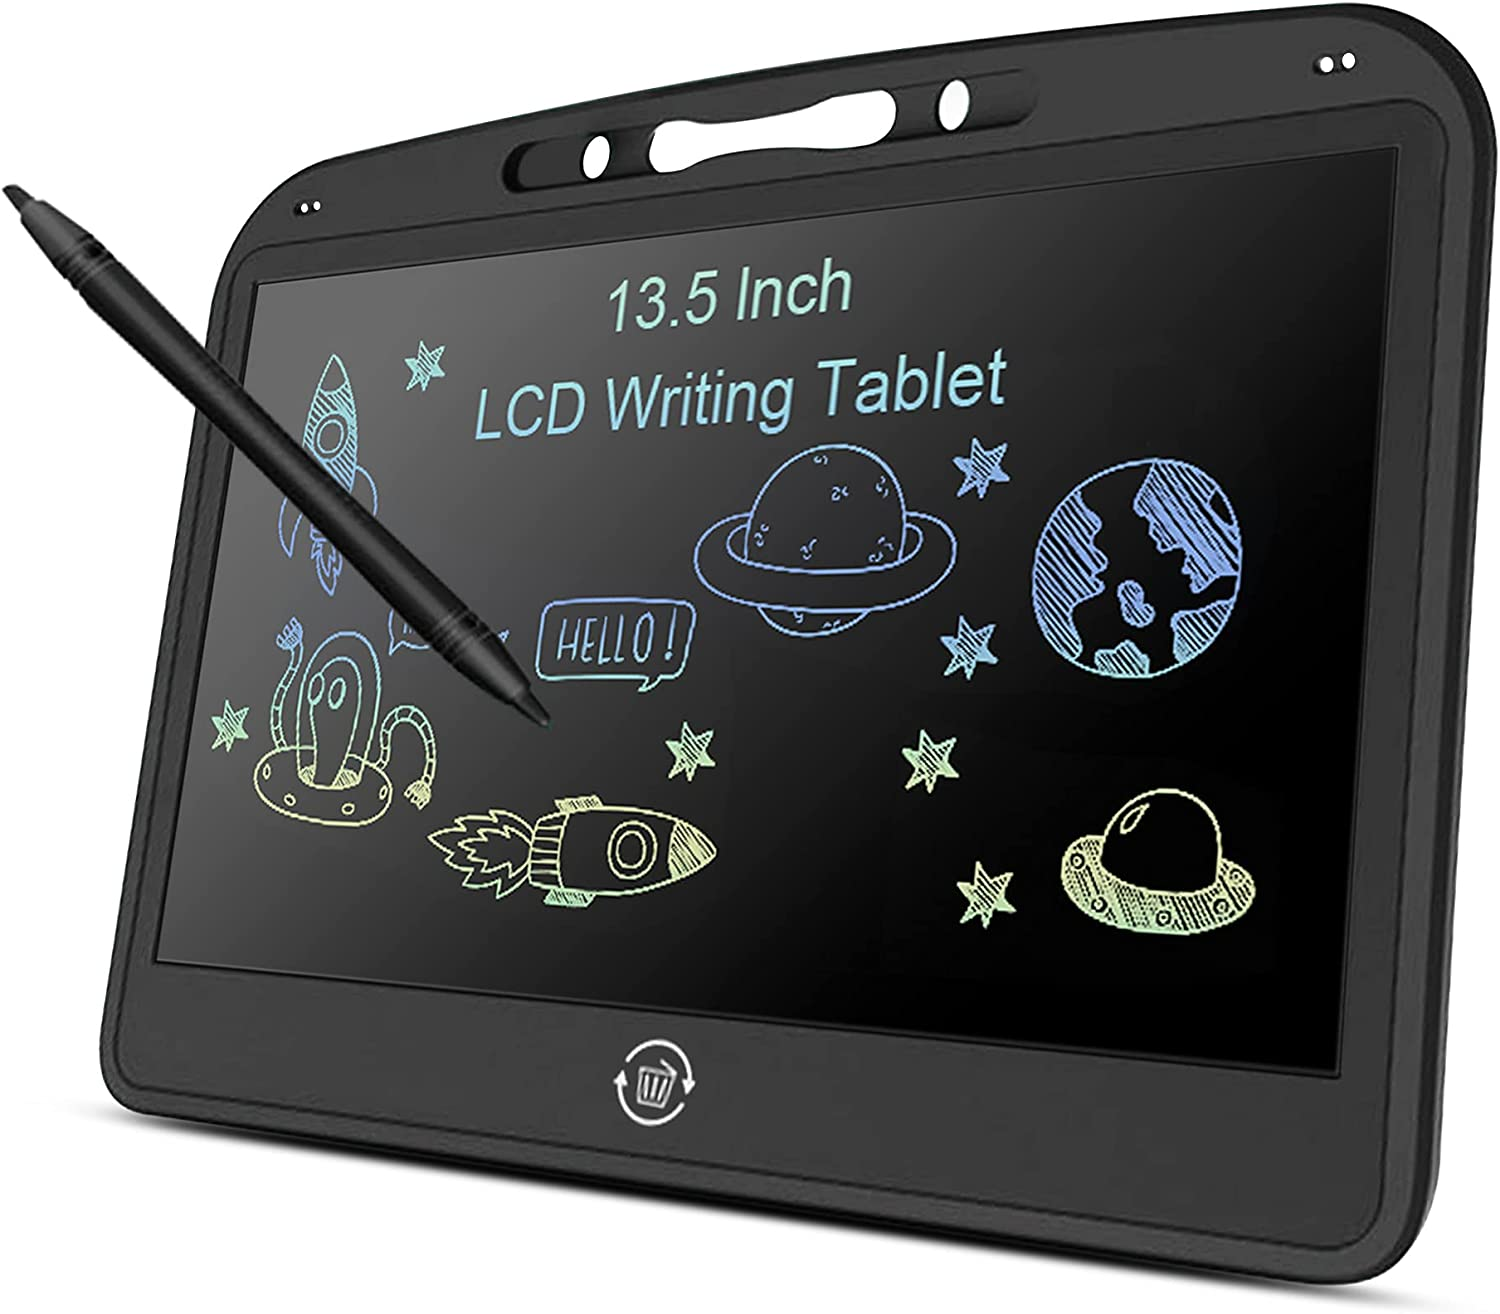 Witeo LCD Writing Tablet Gifts for Kids /& Adults Erasable Reusable Electronic Drawing Pads 13.5 Inches Colorful Screen Doodle Boards with Lock Function